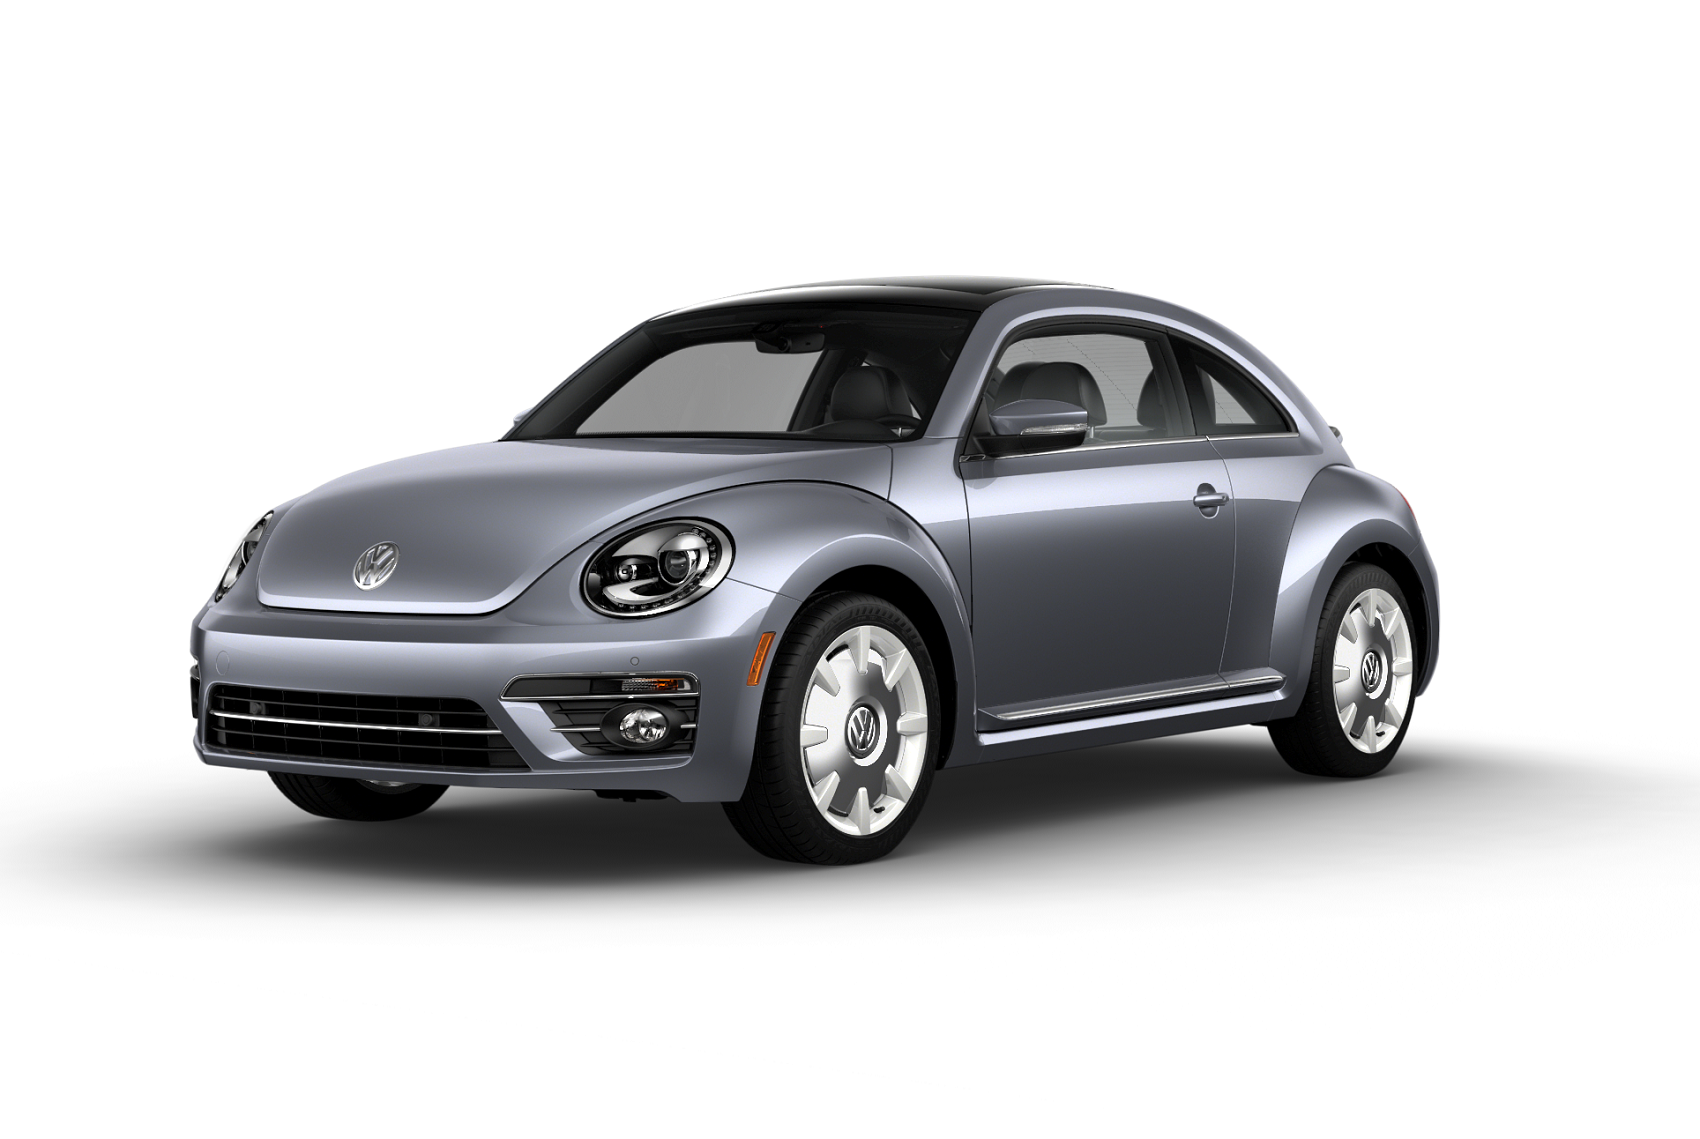 2019 Volkswagen Beetle Final Edition SEL Platinum Gray